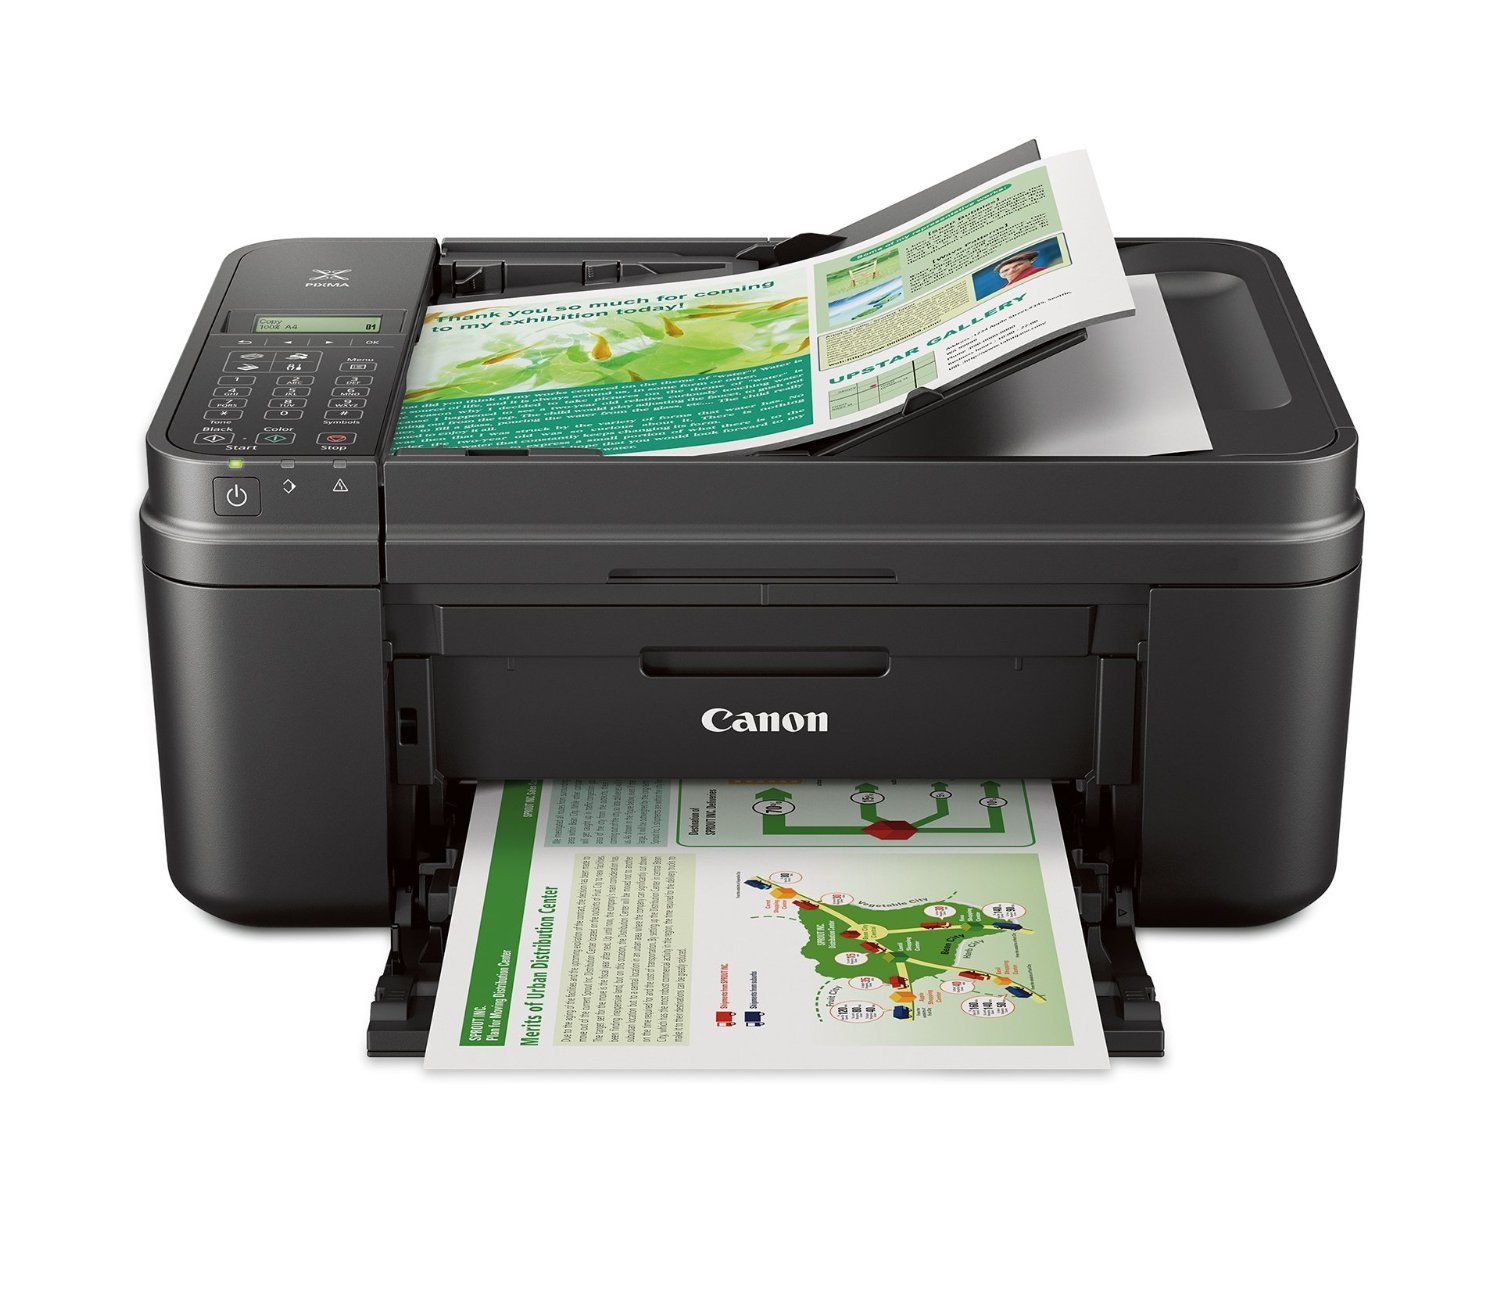 Printer Canon MX495 Driver for Linux Mint 19.x Tara/Tessa/Tina/Tricia How to Download and Install - Featured